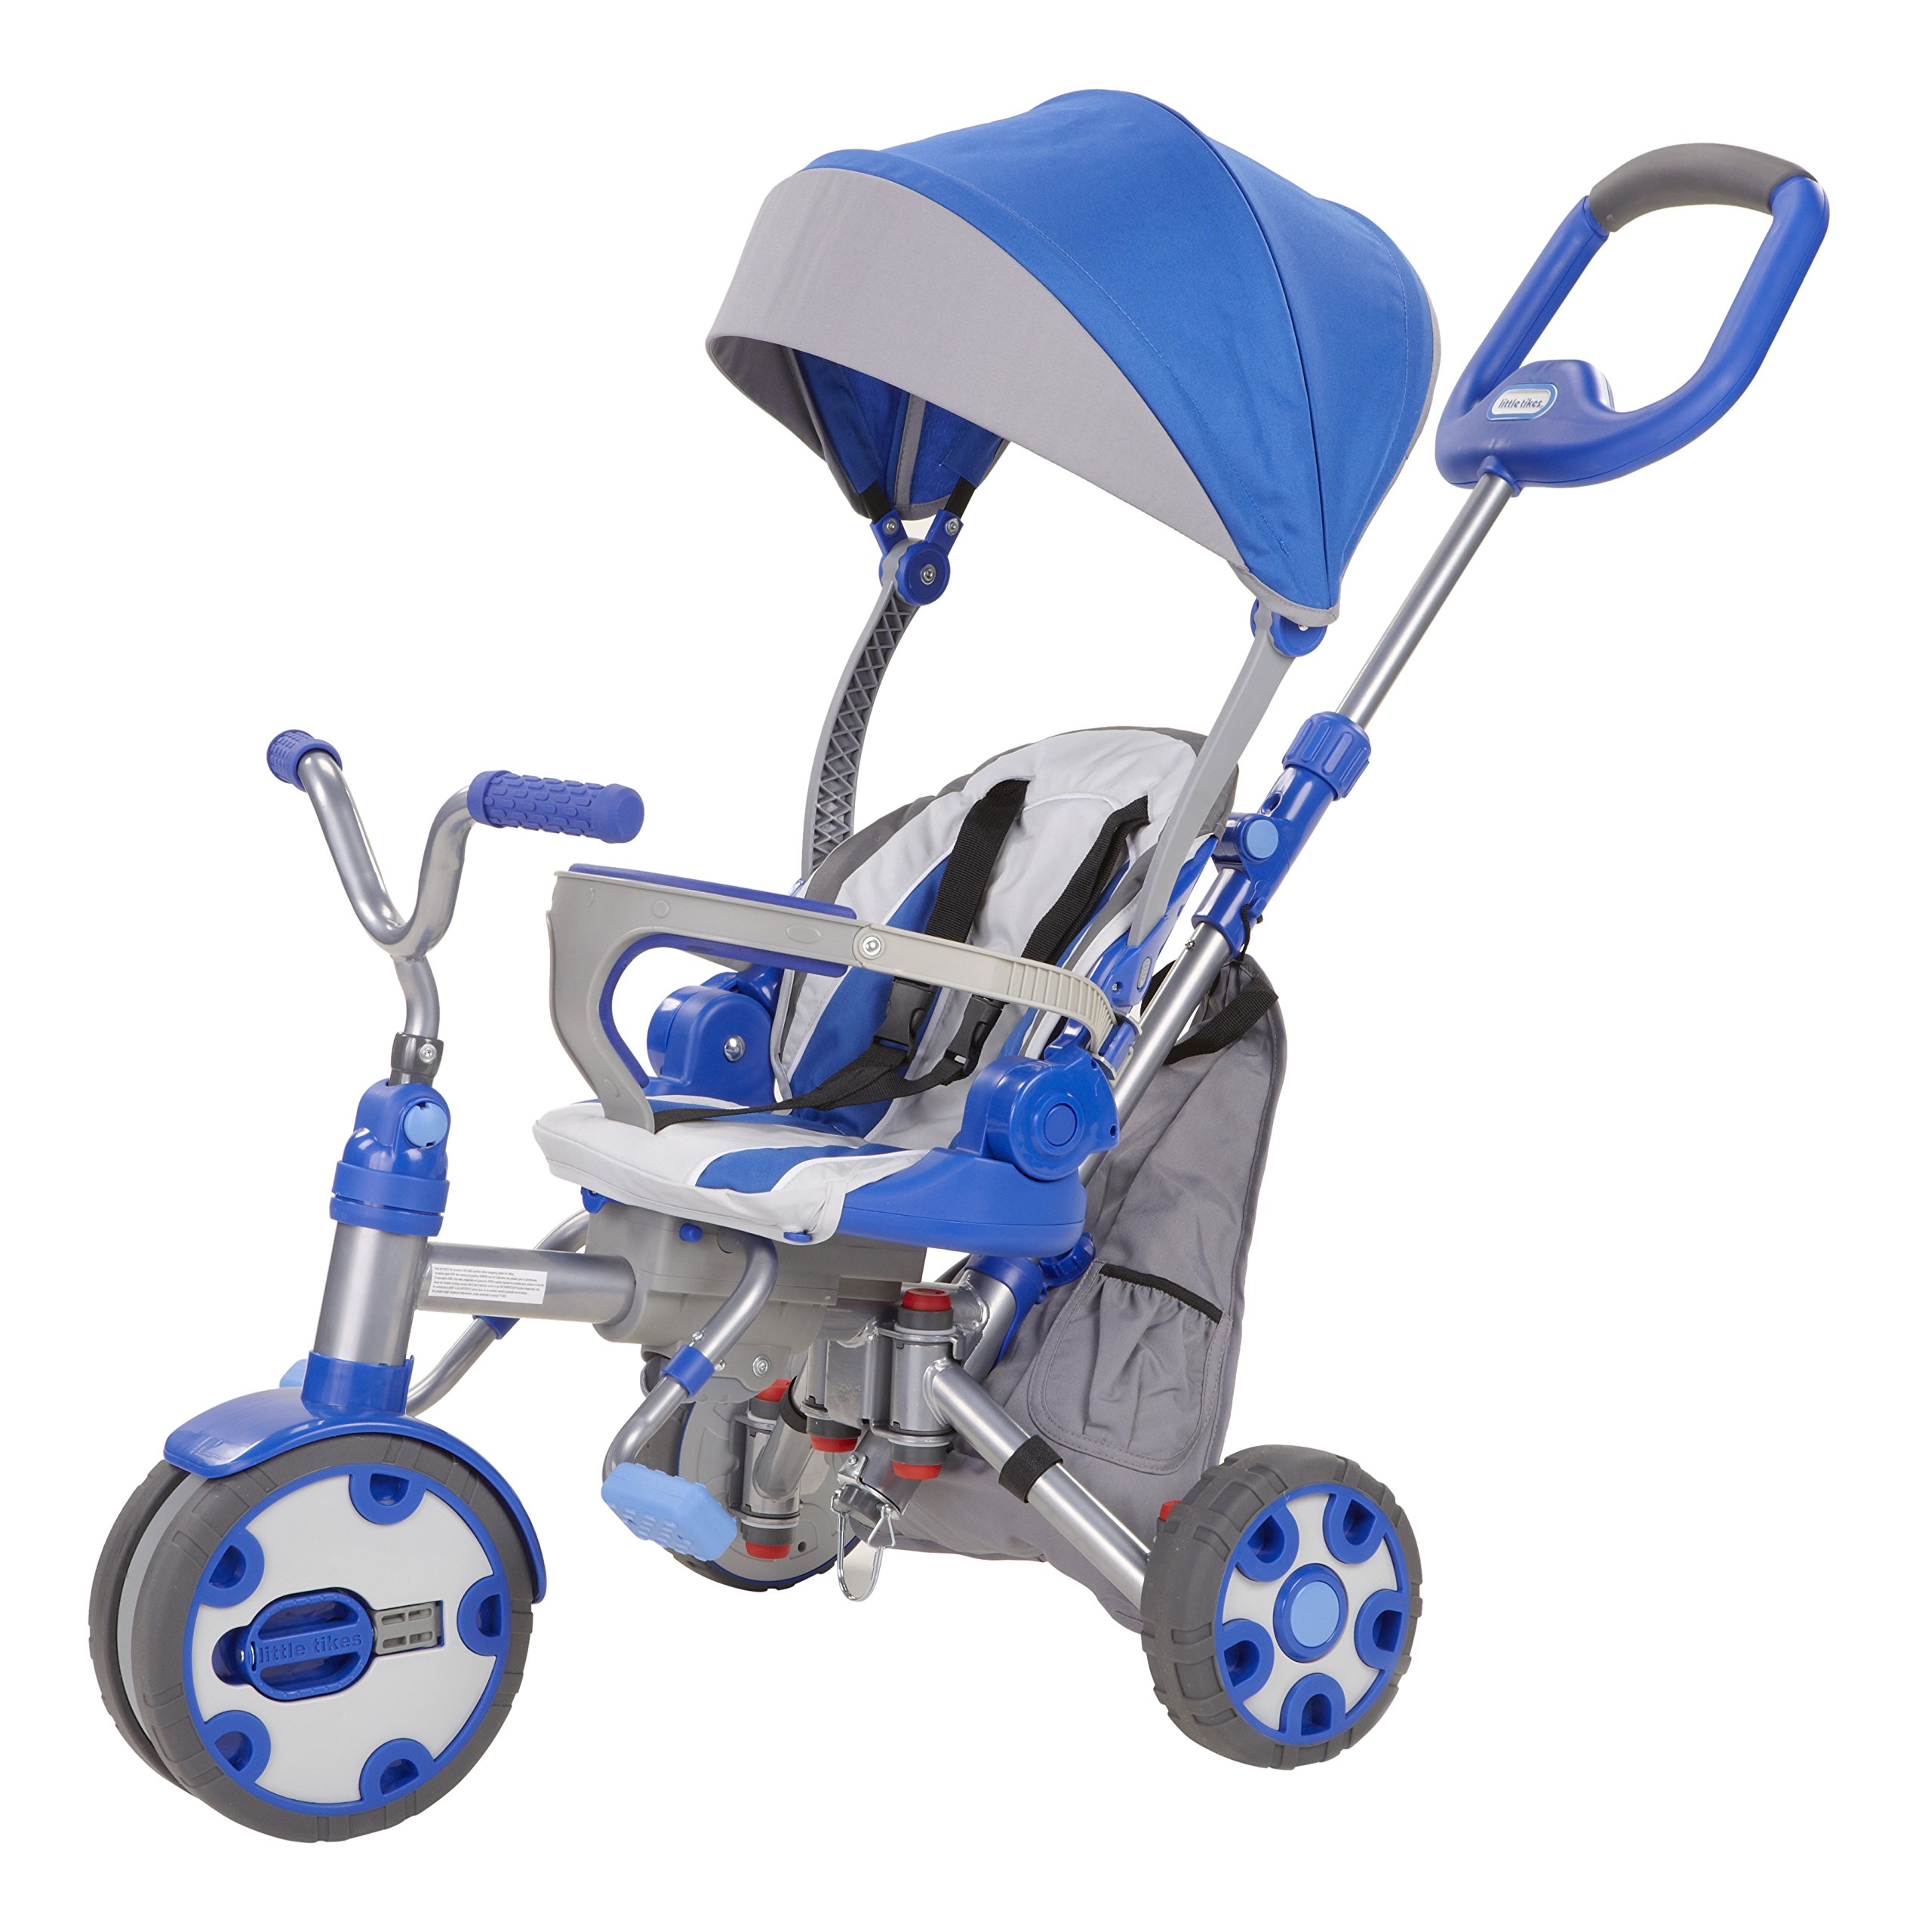 Little Tikes Fold 'N Go 4-in-1 Trike – Blue